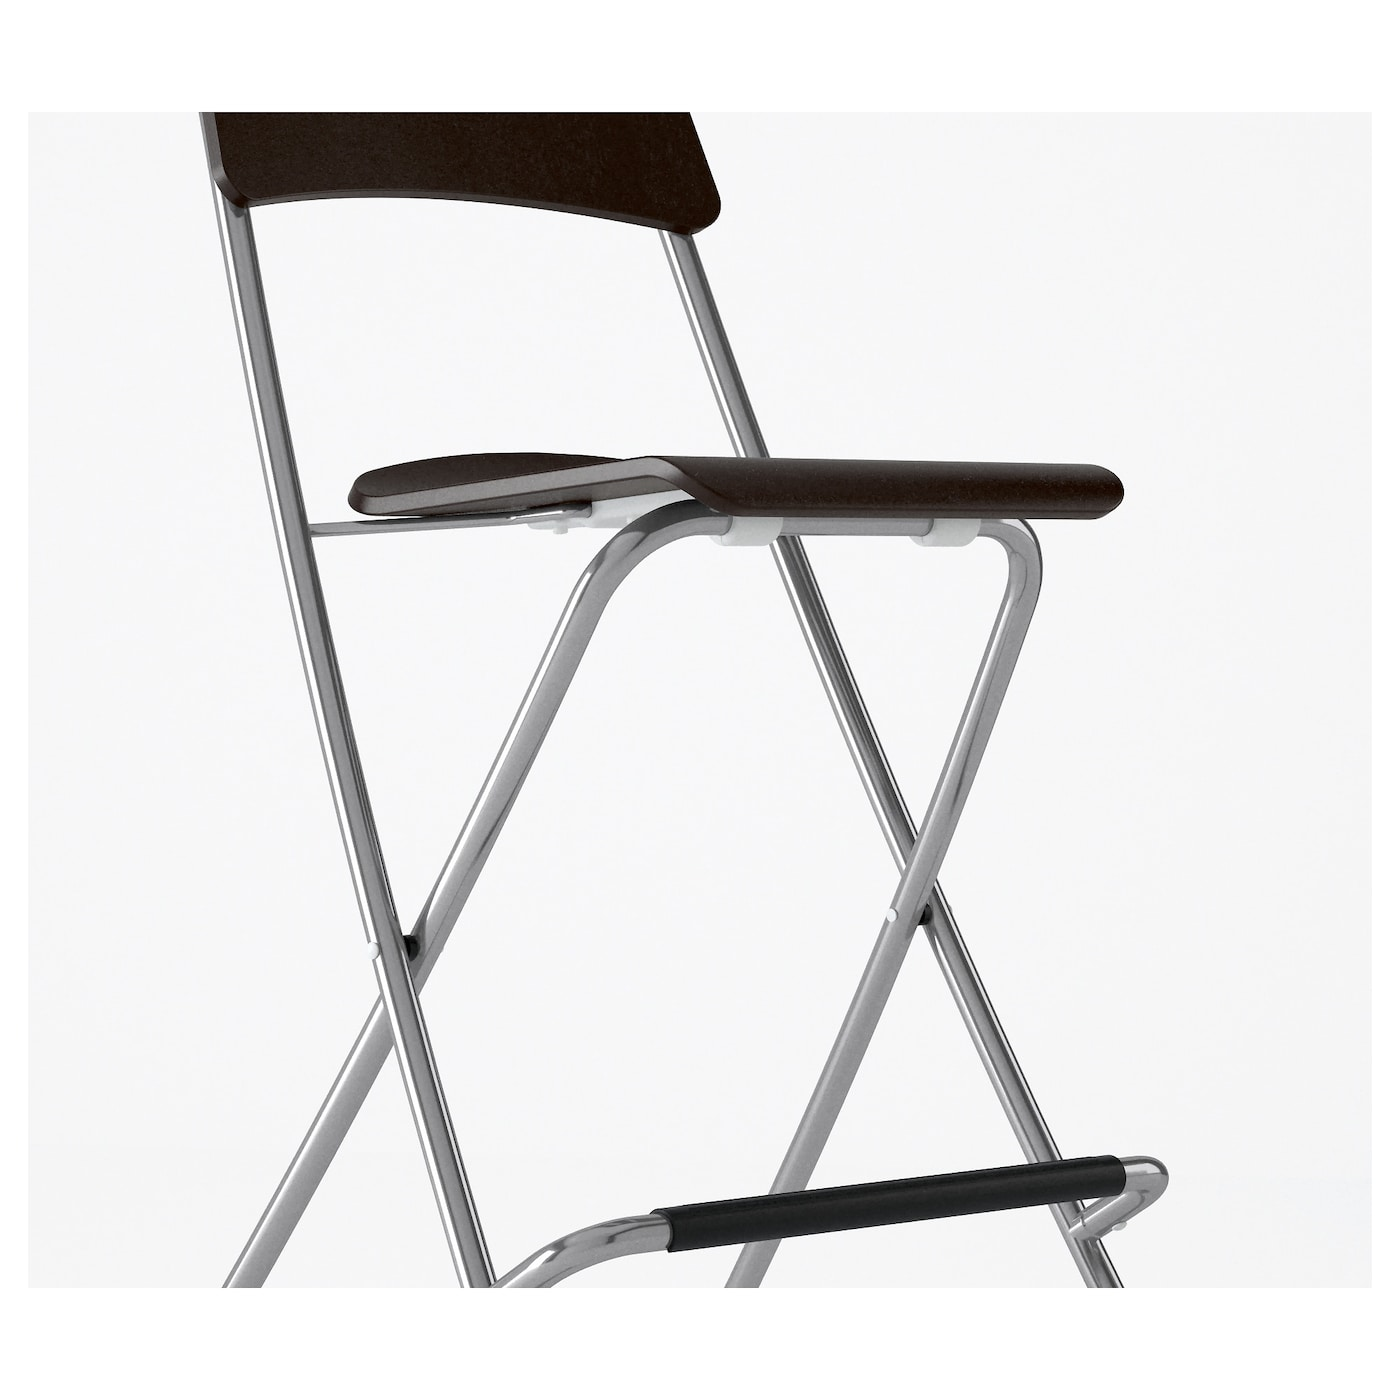 Franklin bar stool with backrest foldable brown black for Folding bar stools ikea